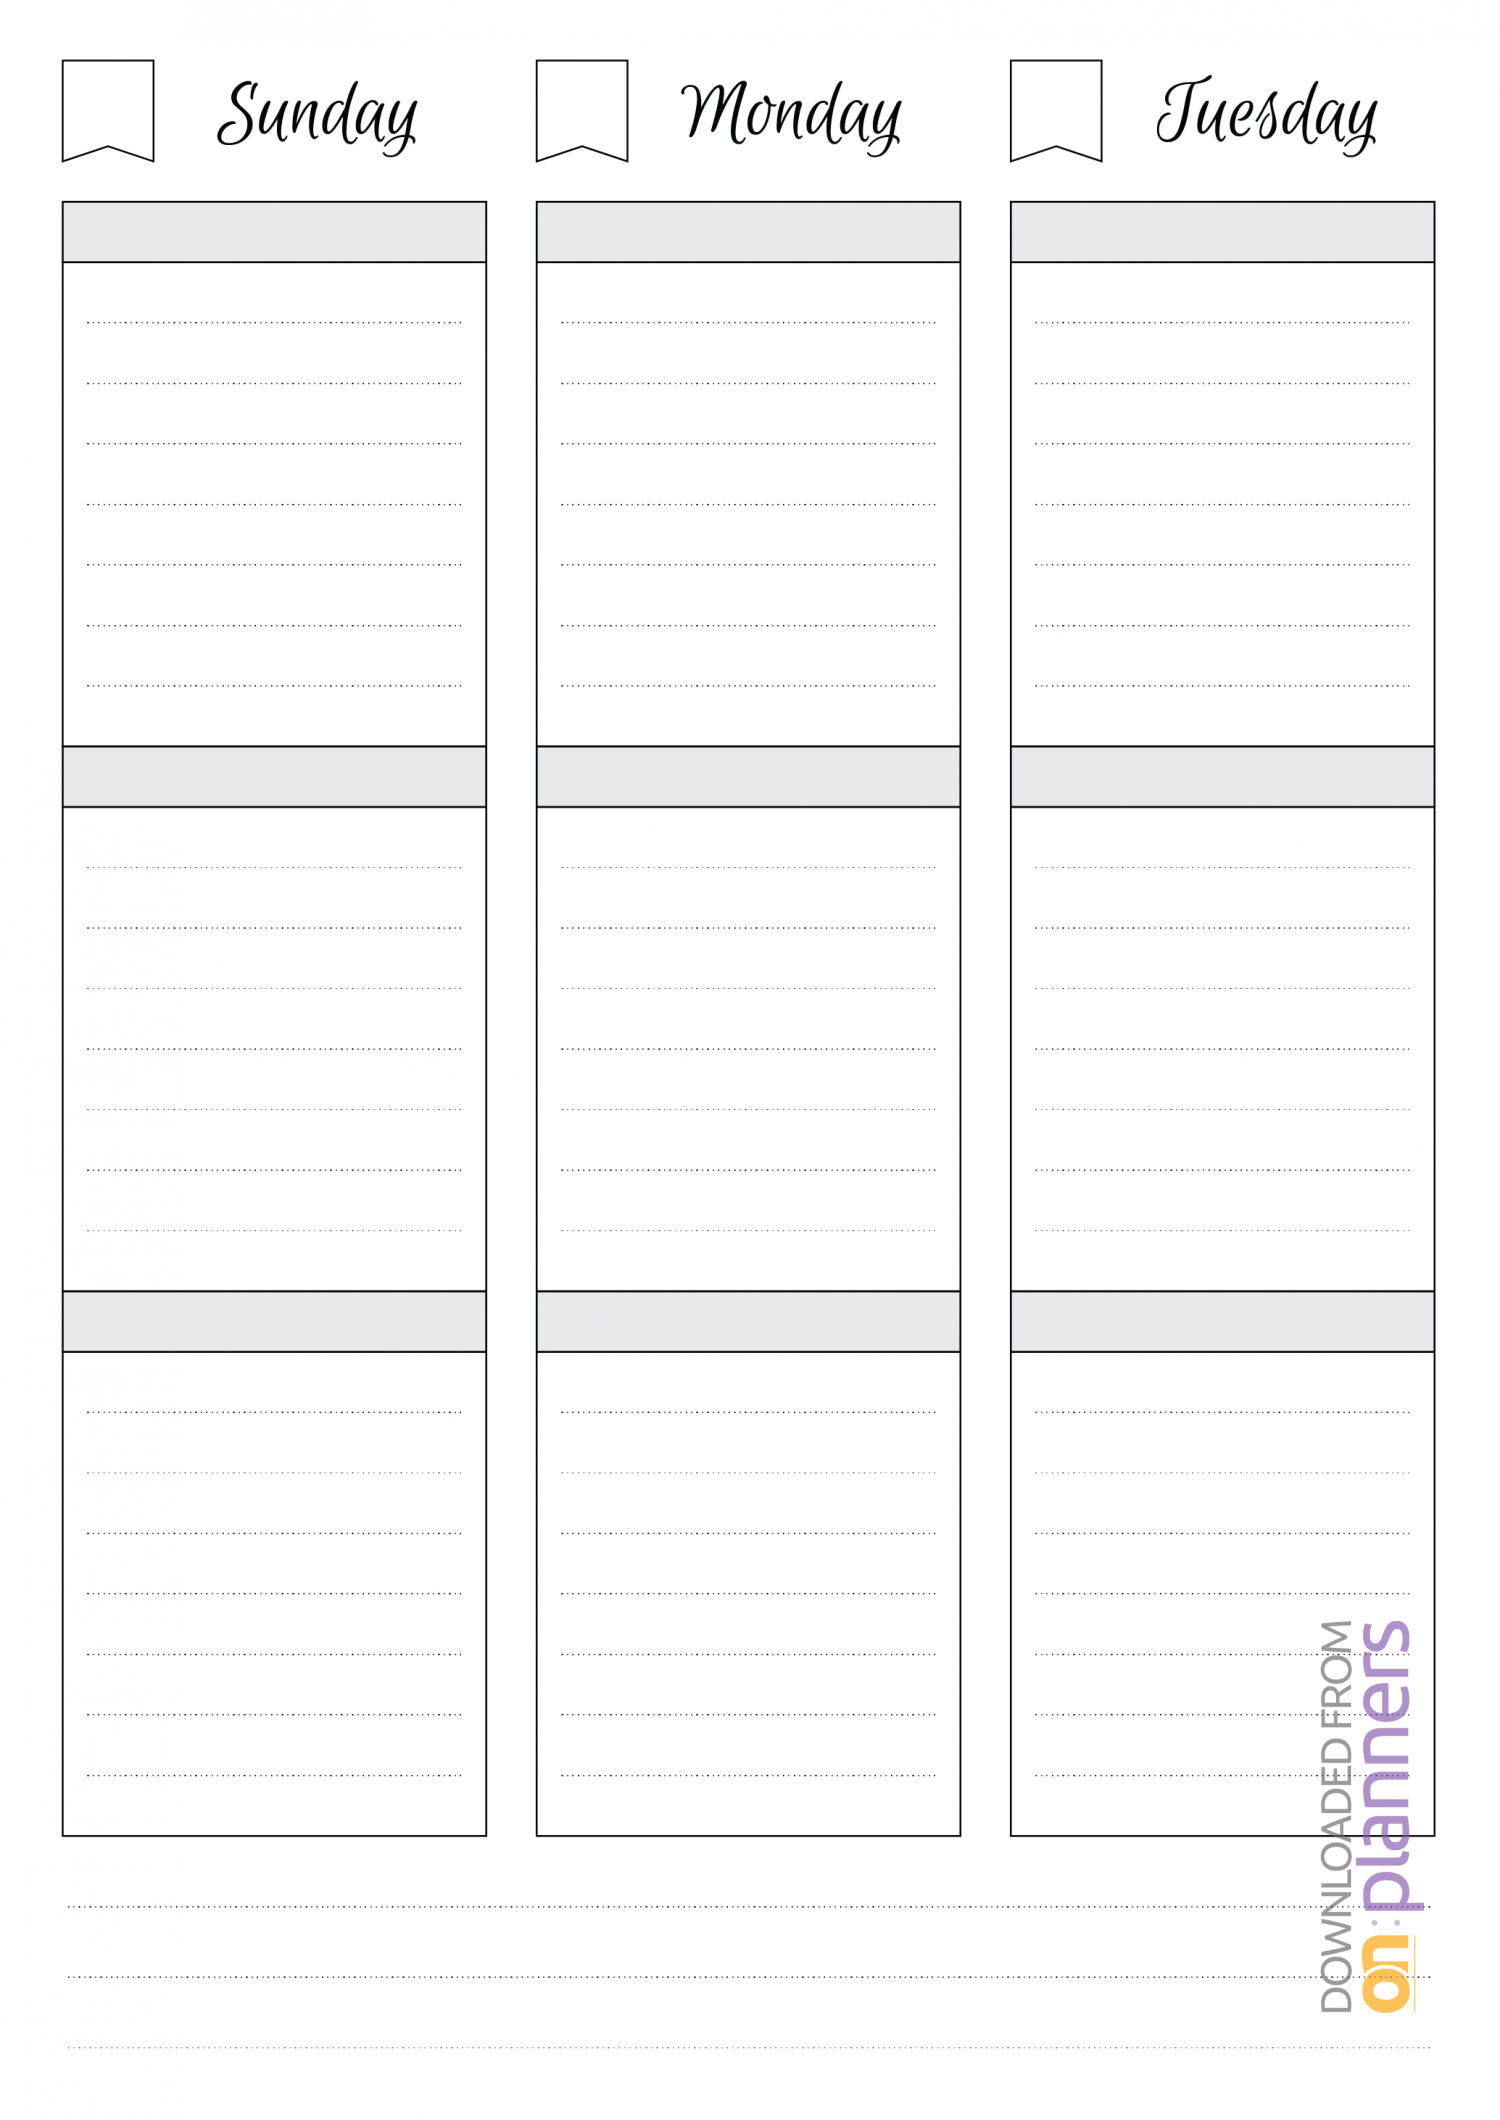 018 Printable Undated Weekly Schedule Template Imposing